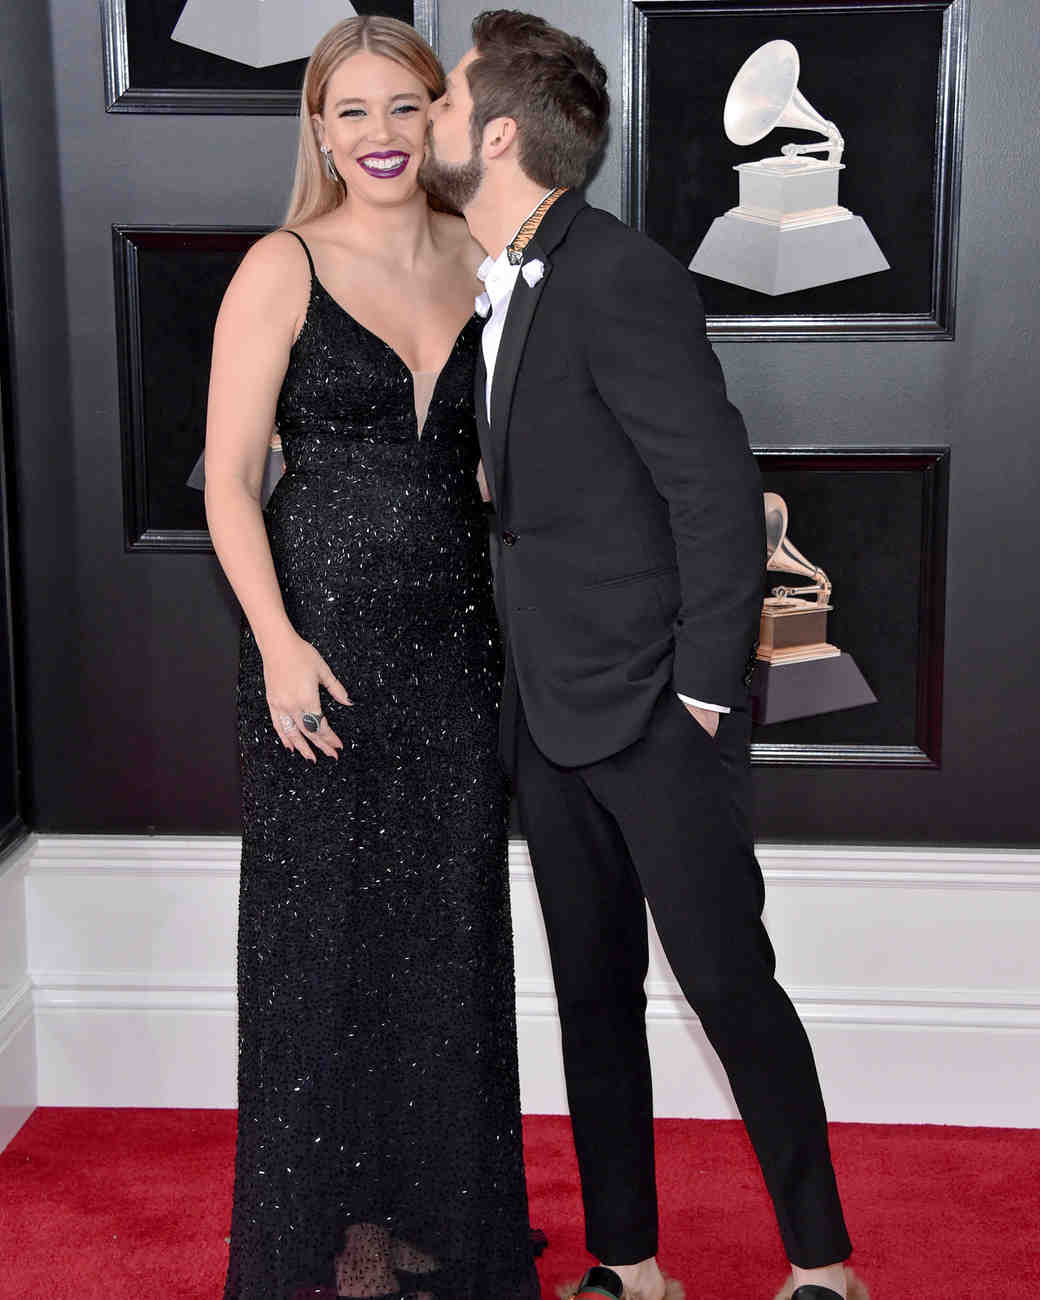 Thomas Rhett and Lauren Akins 2018 Grammy Awards